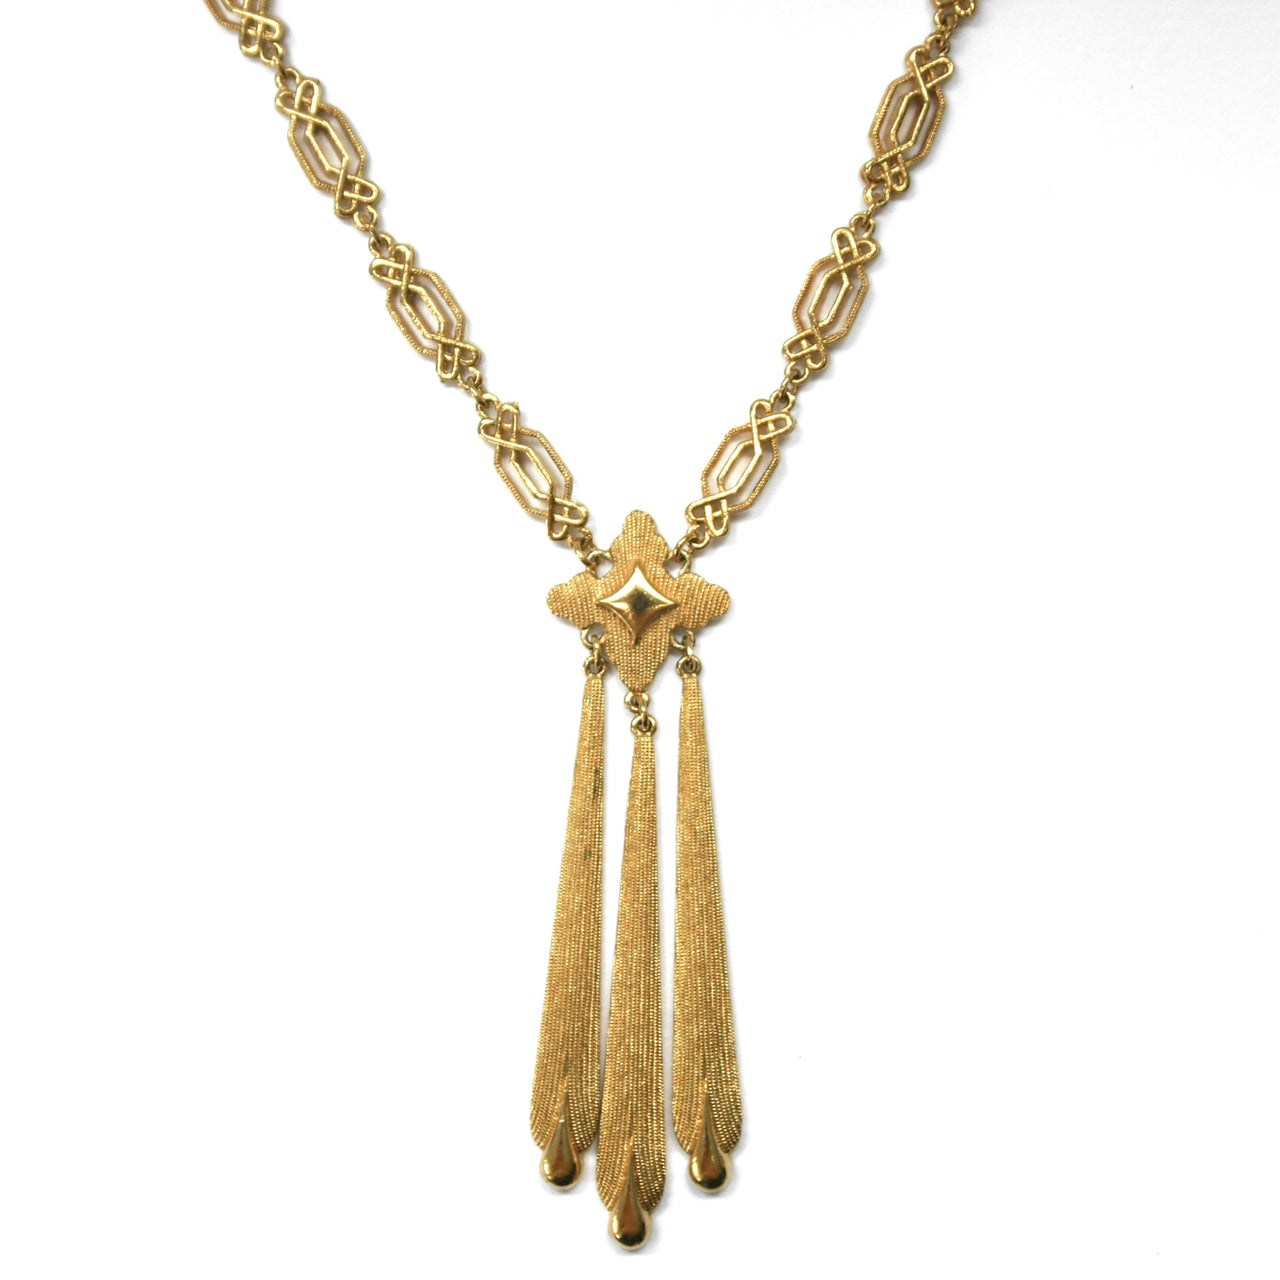 Eclectica Vintage Jewellery | UK | 1970s Vintage Trifari gold plated neckace